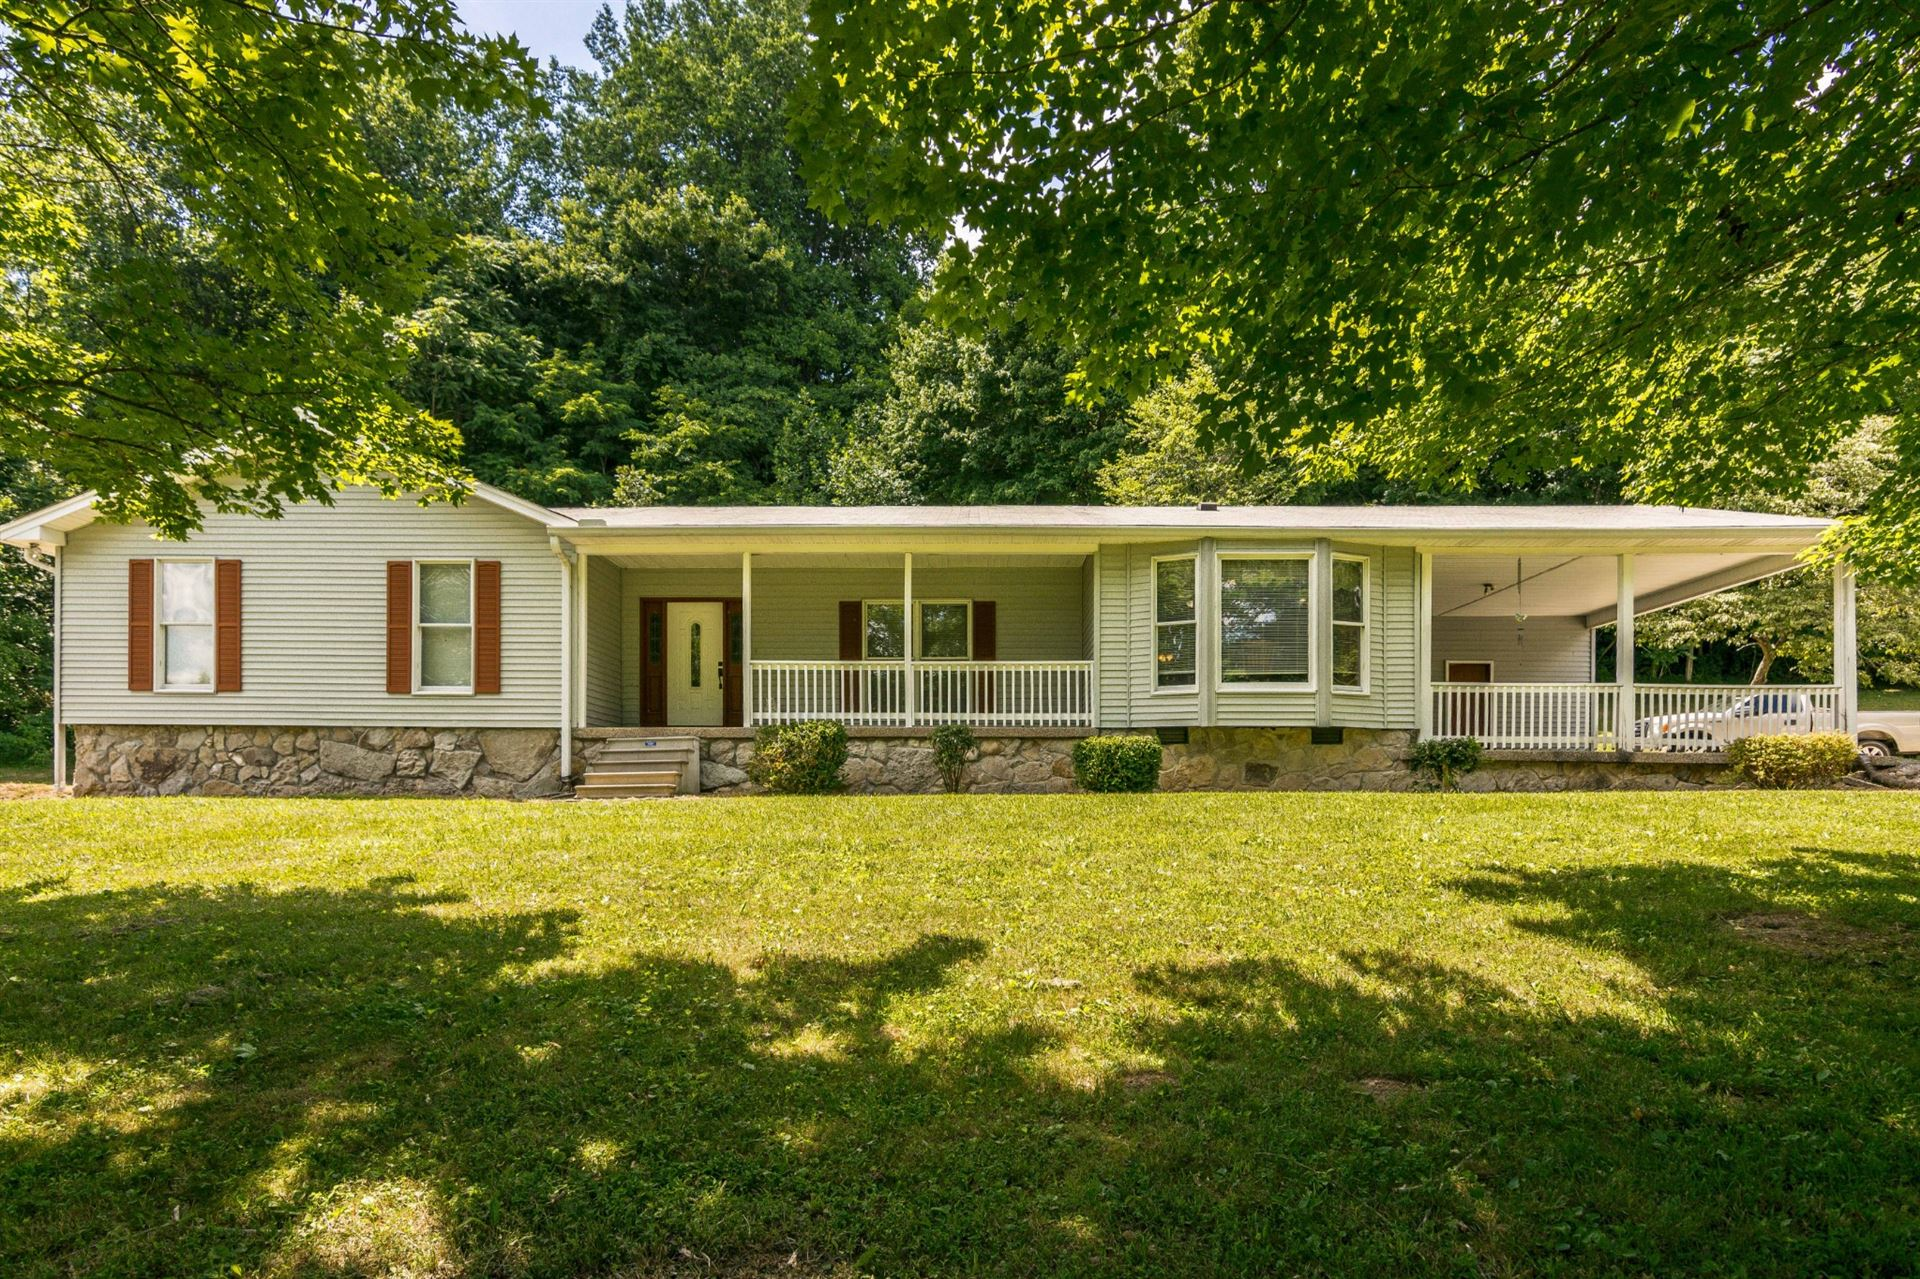 791 Rogues Fork Rd, Bethpage, TN 37022 - MLS#: 2264115